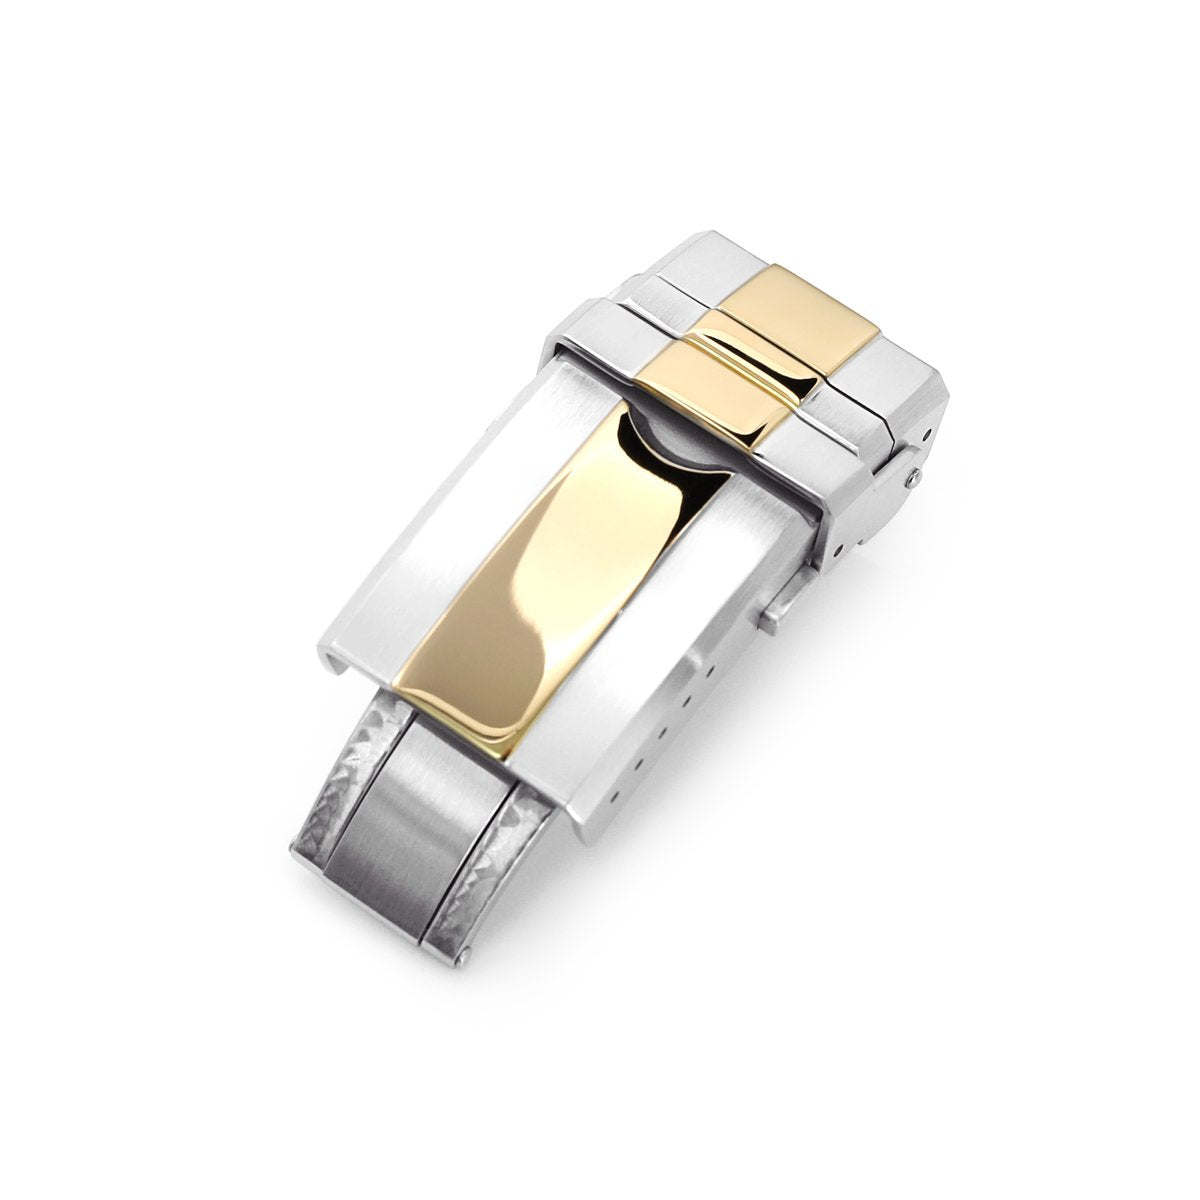 16mm 18mm or 20mm Solid 316L Stainless Steel Double Locks Turning Clasp Button Control Brushed with IP Gold Center Strapcode Buckles